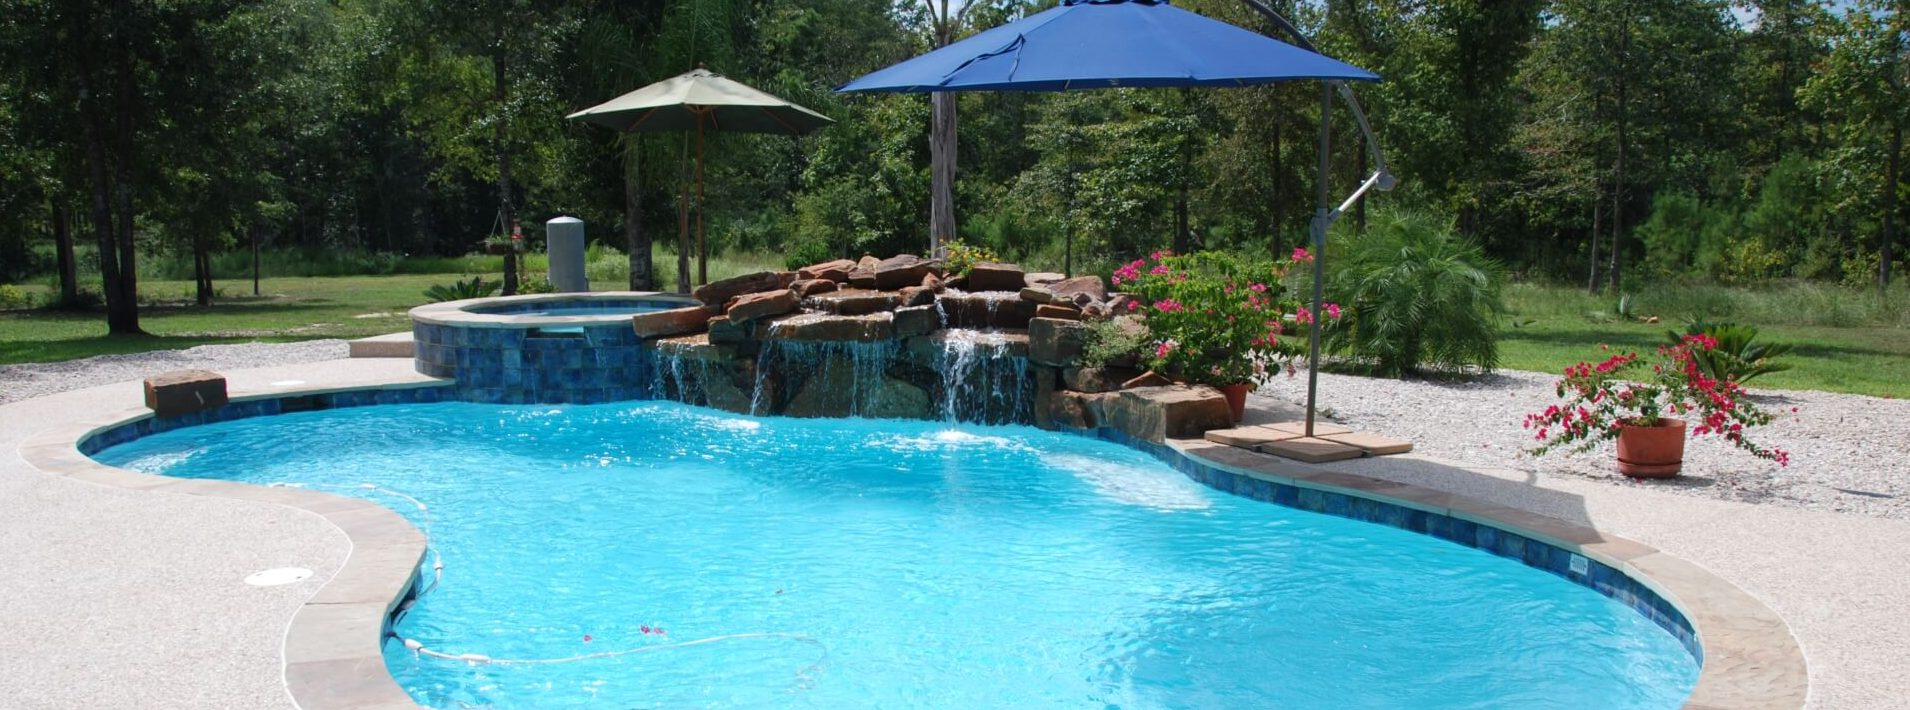 5 Ways to Plan Ahead for Next Year's Pool Installation